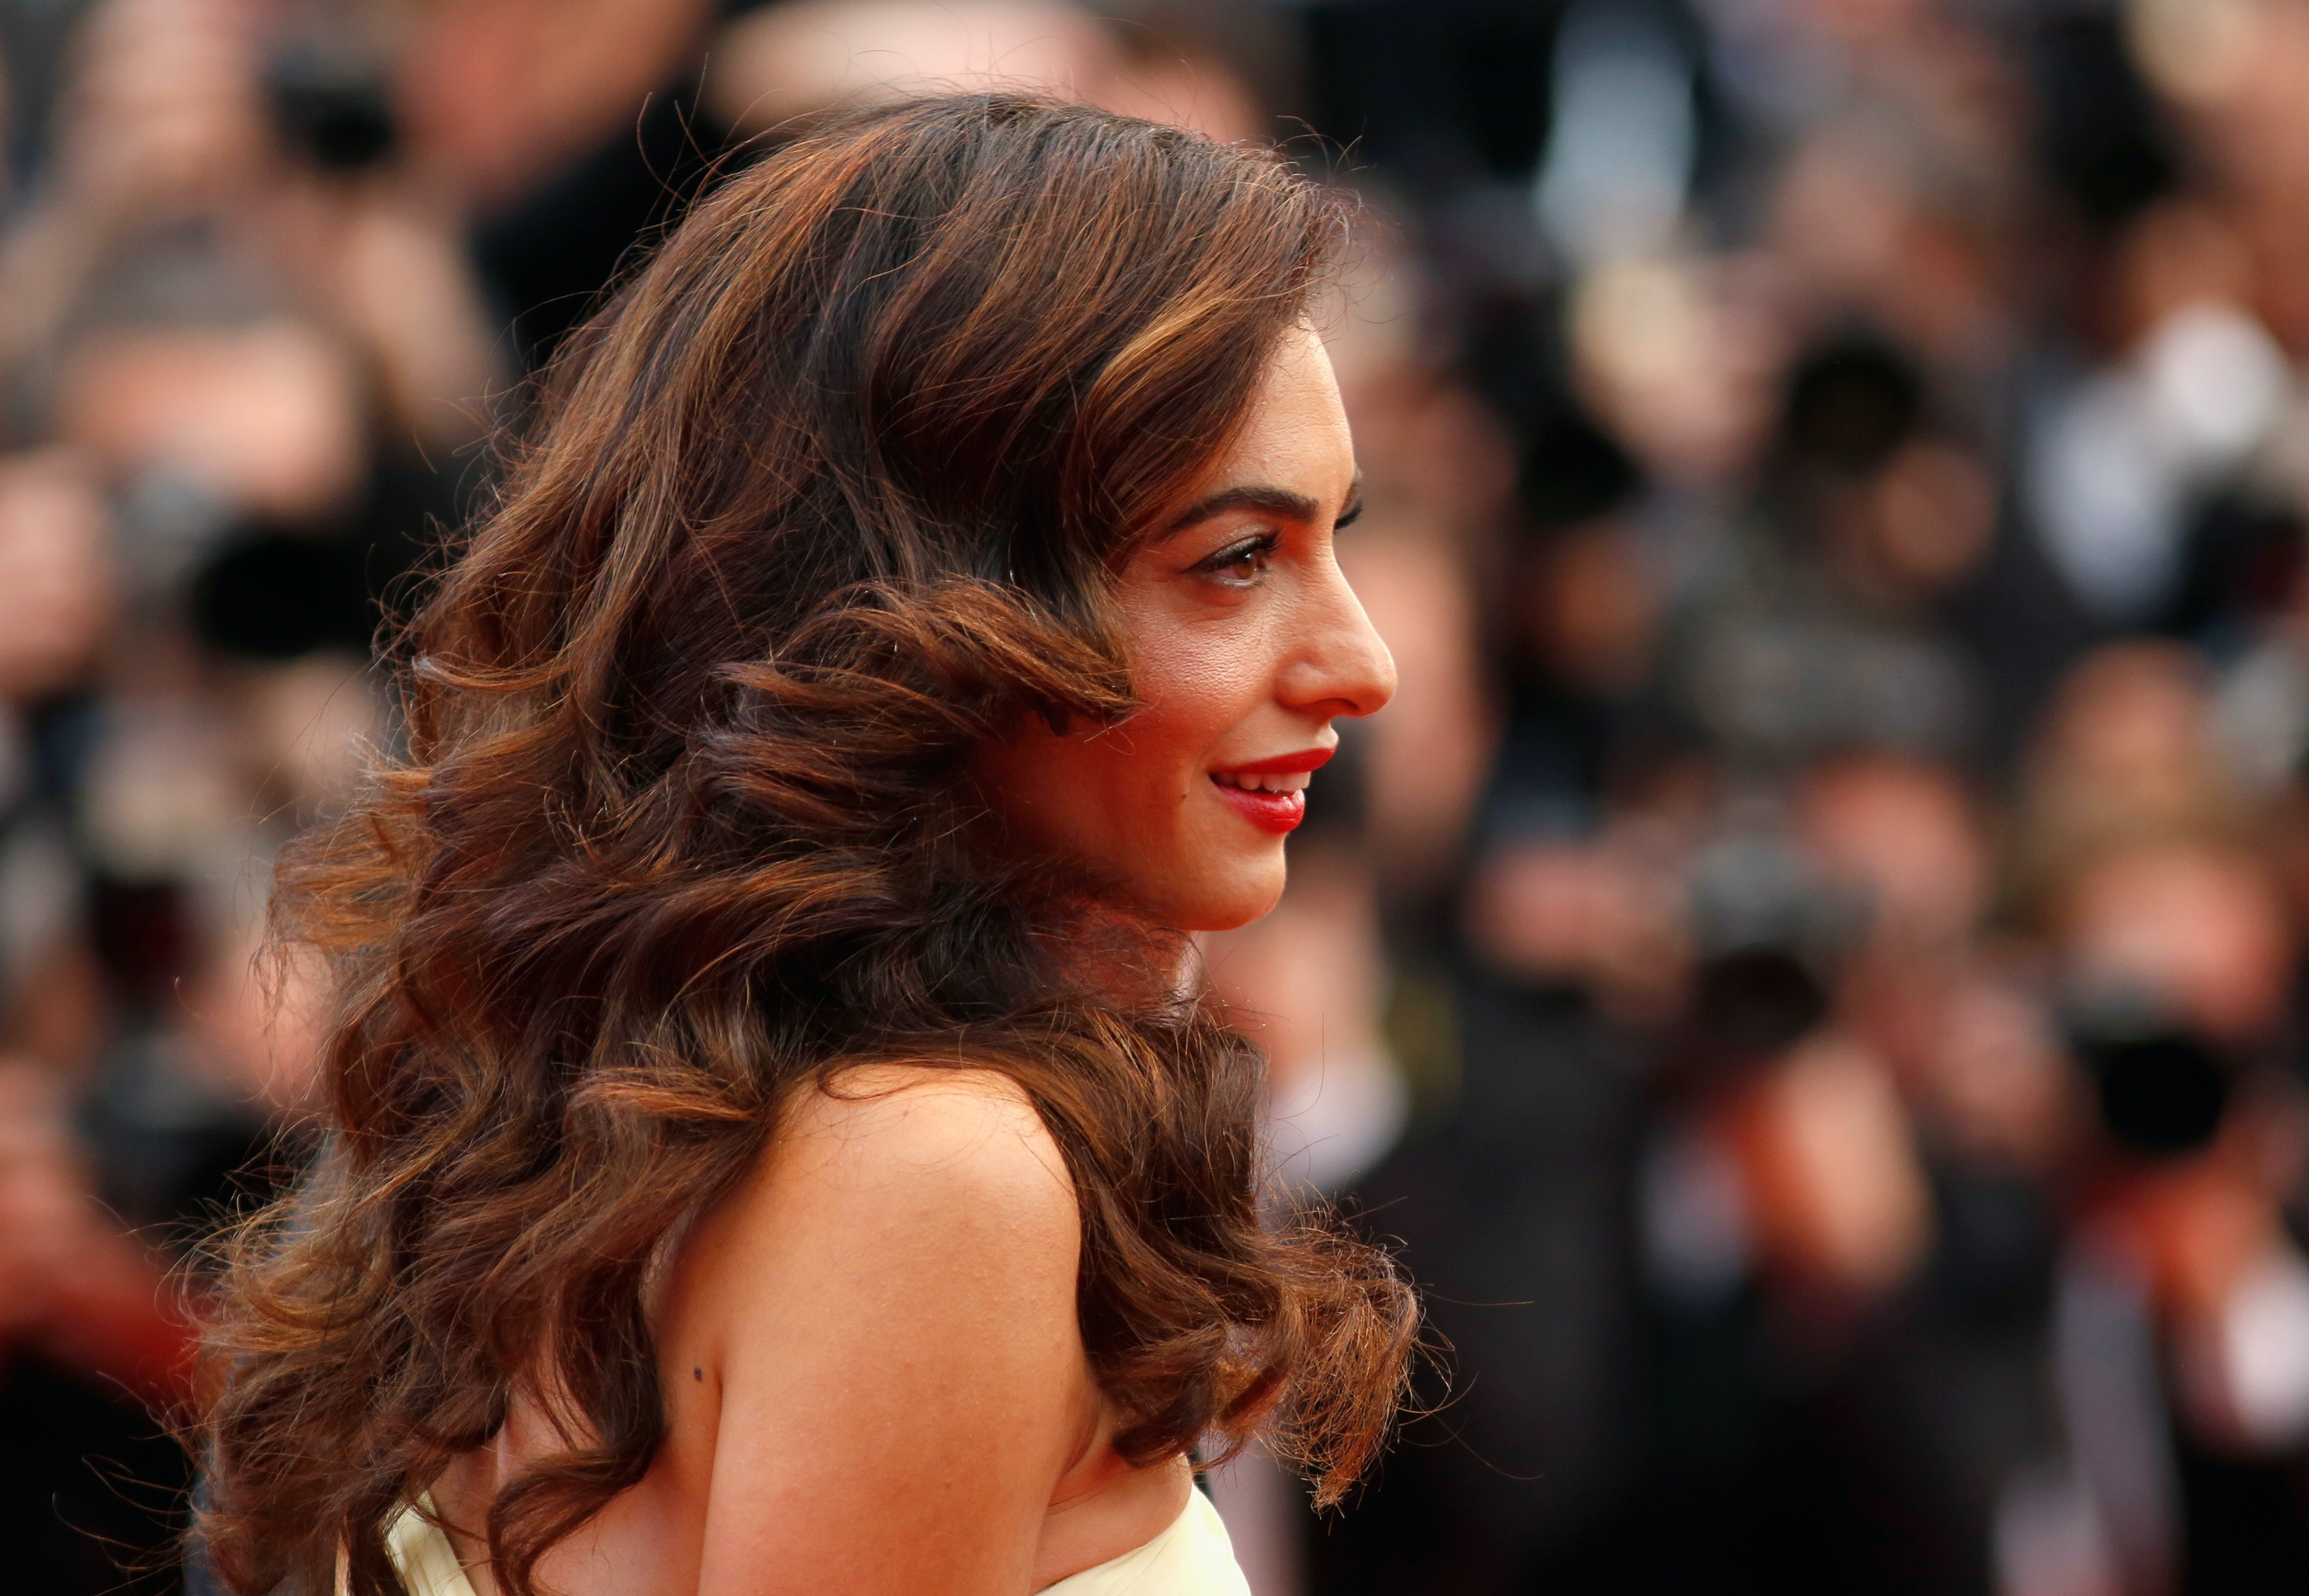 What Kind Of Cases Does Amal Clooney Work On? She's Ready To